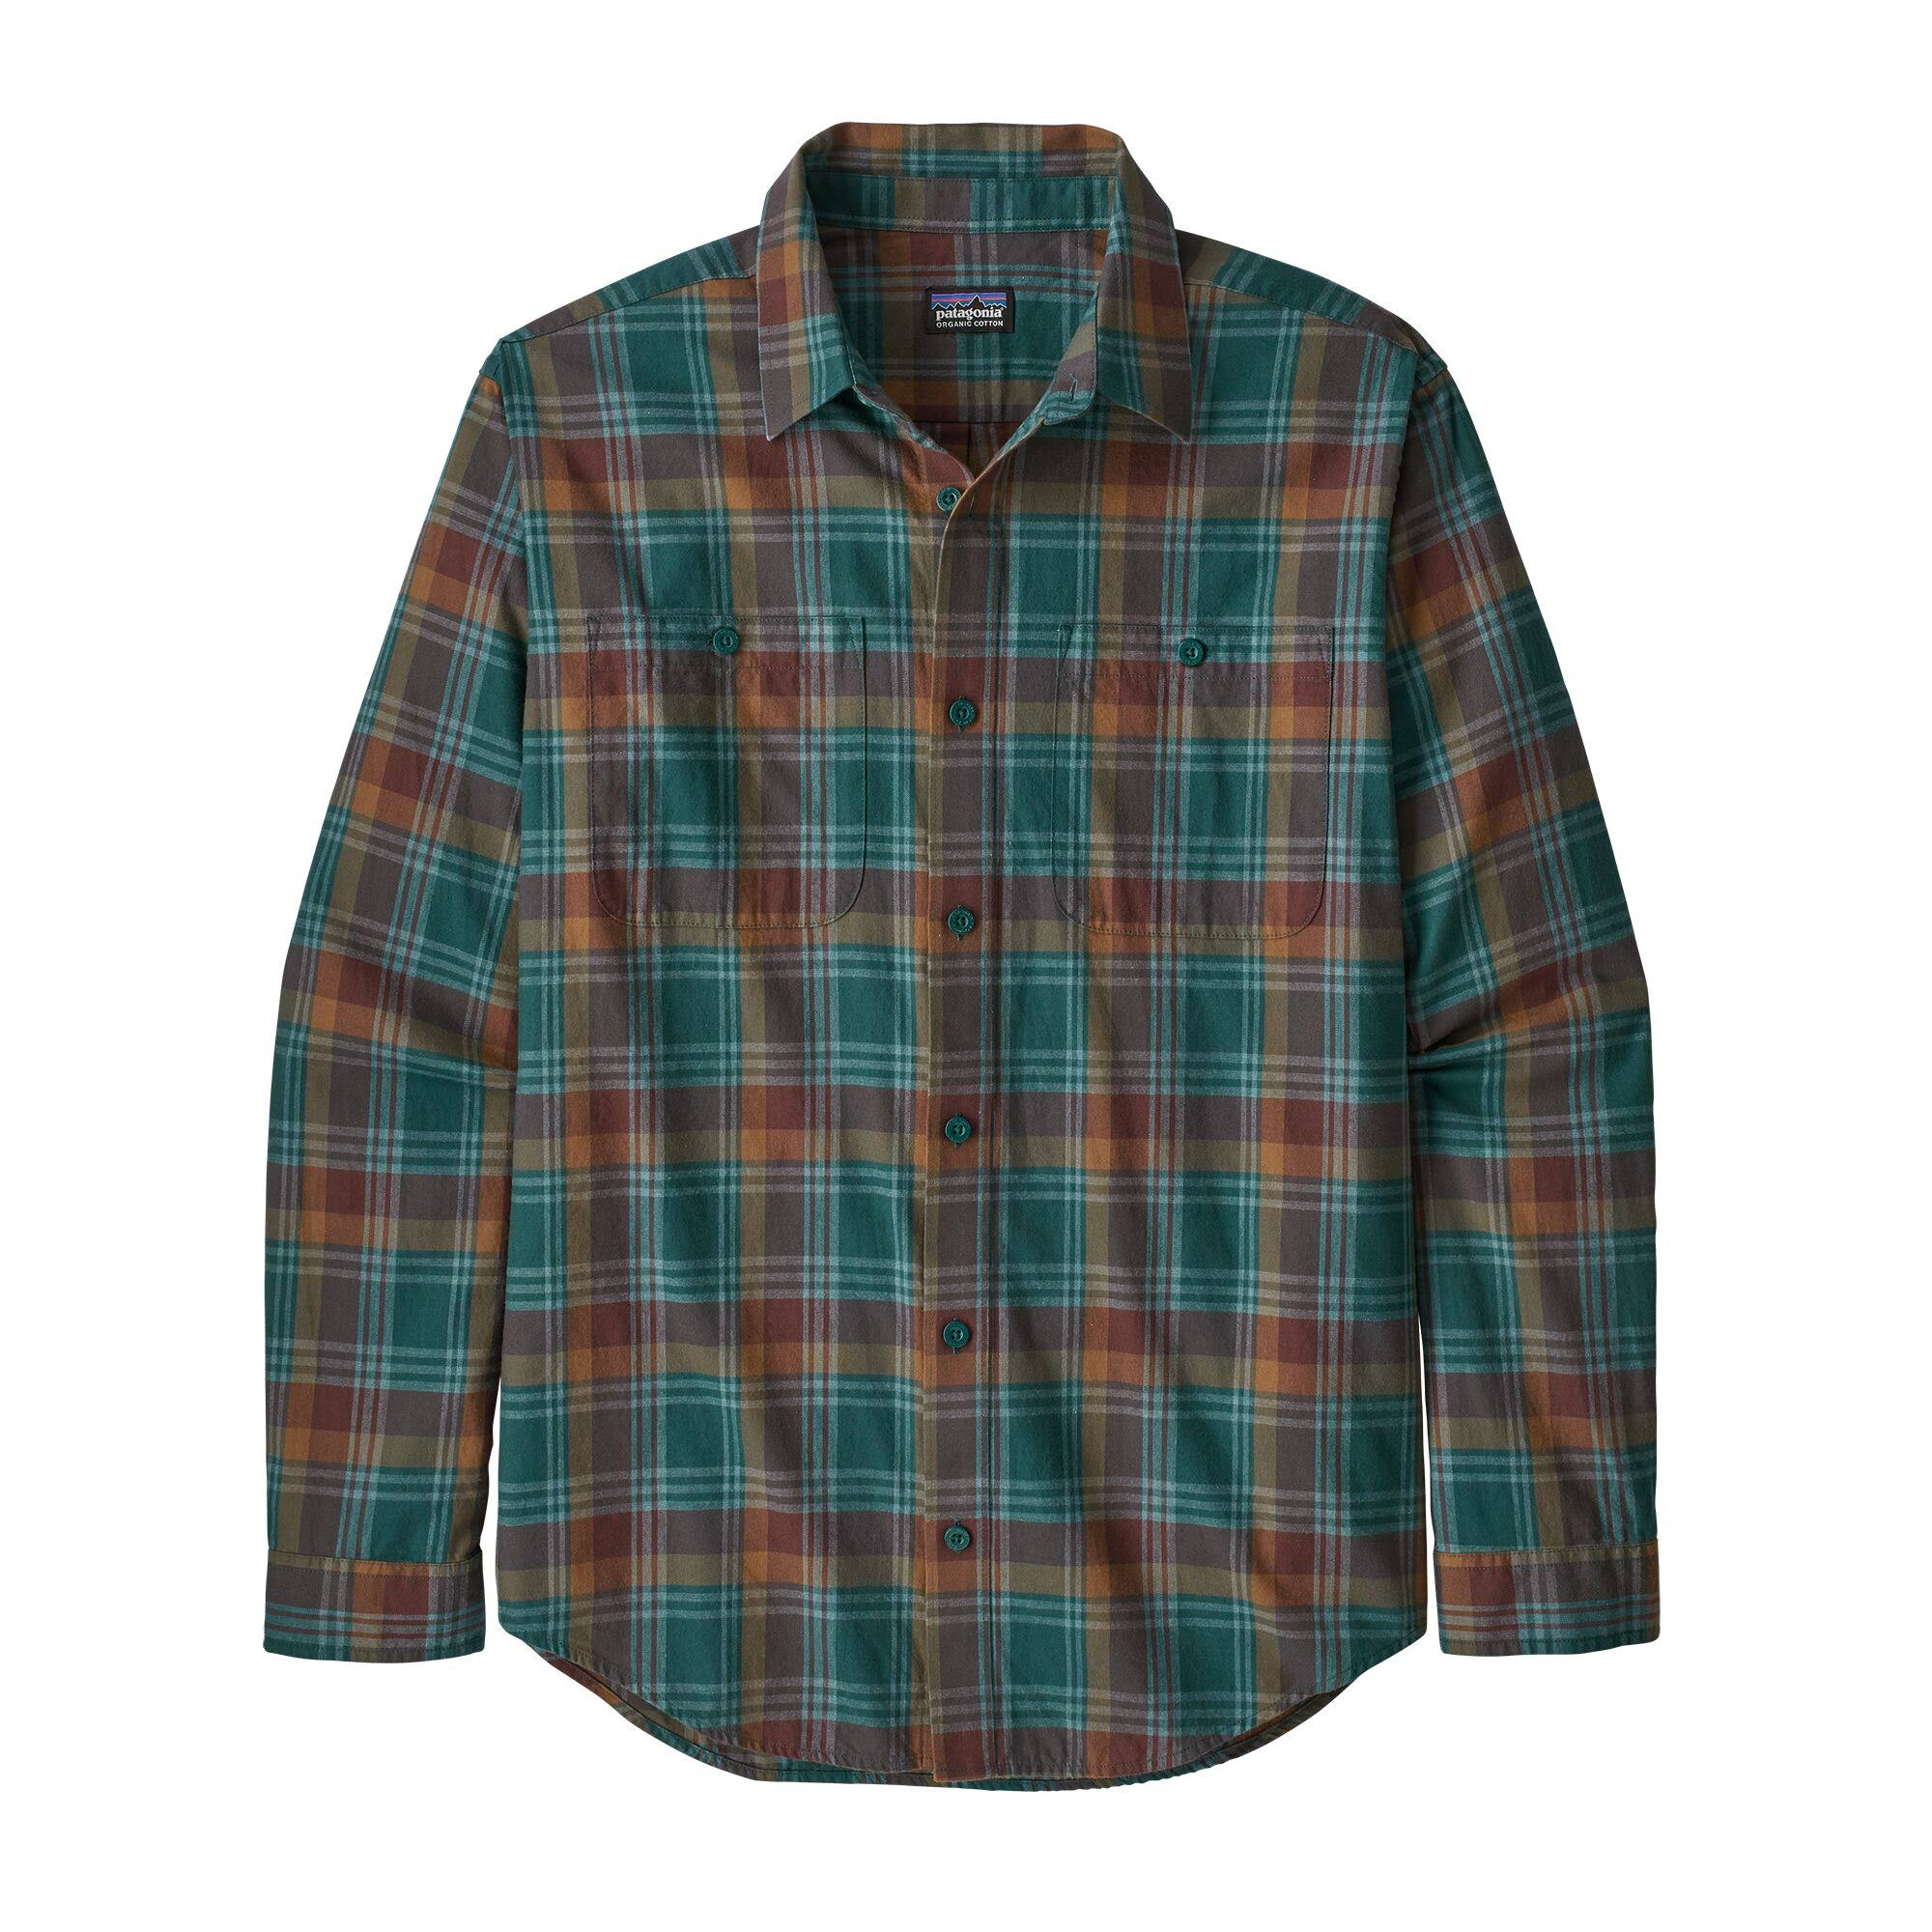 Patagonia Pima Cotton Shirt - Men's Buttes Small/Piki Green, L